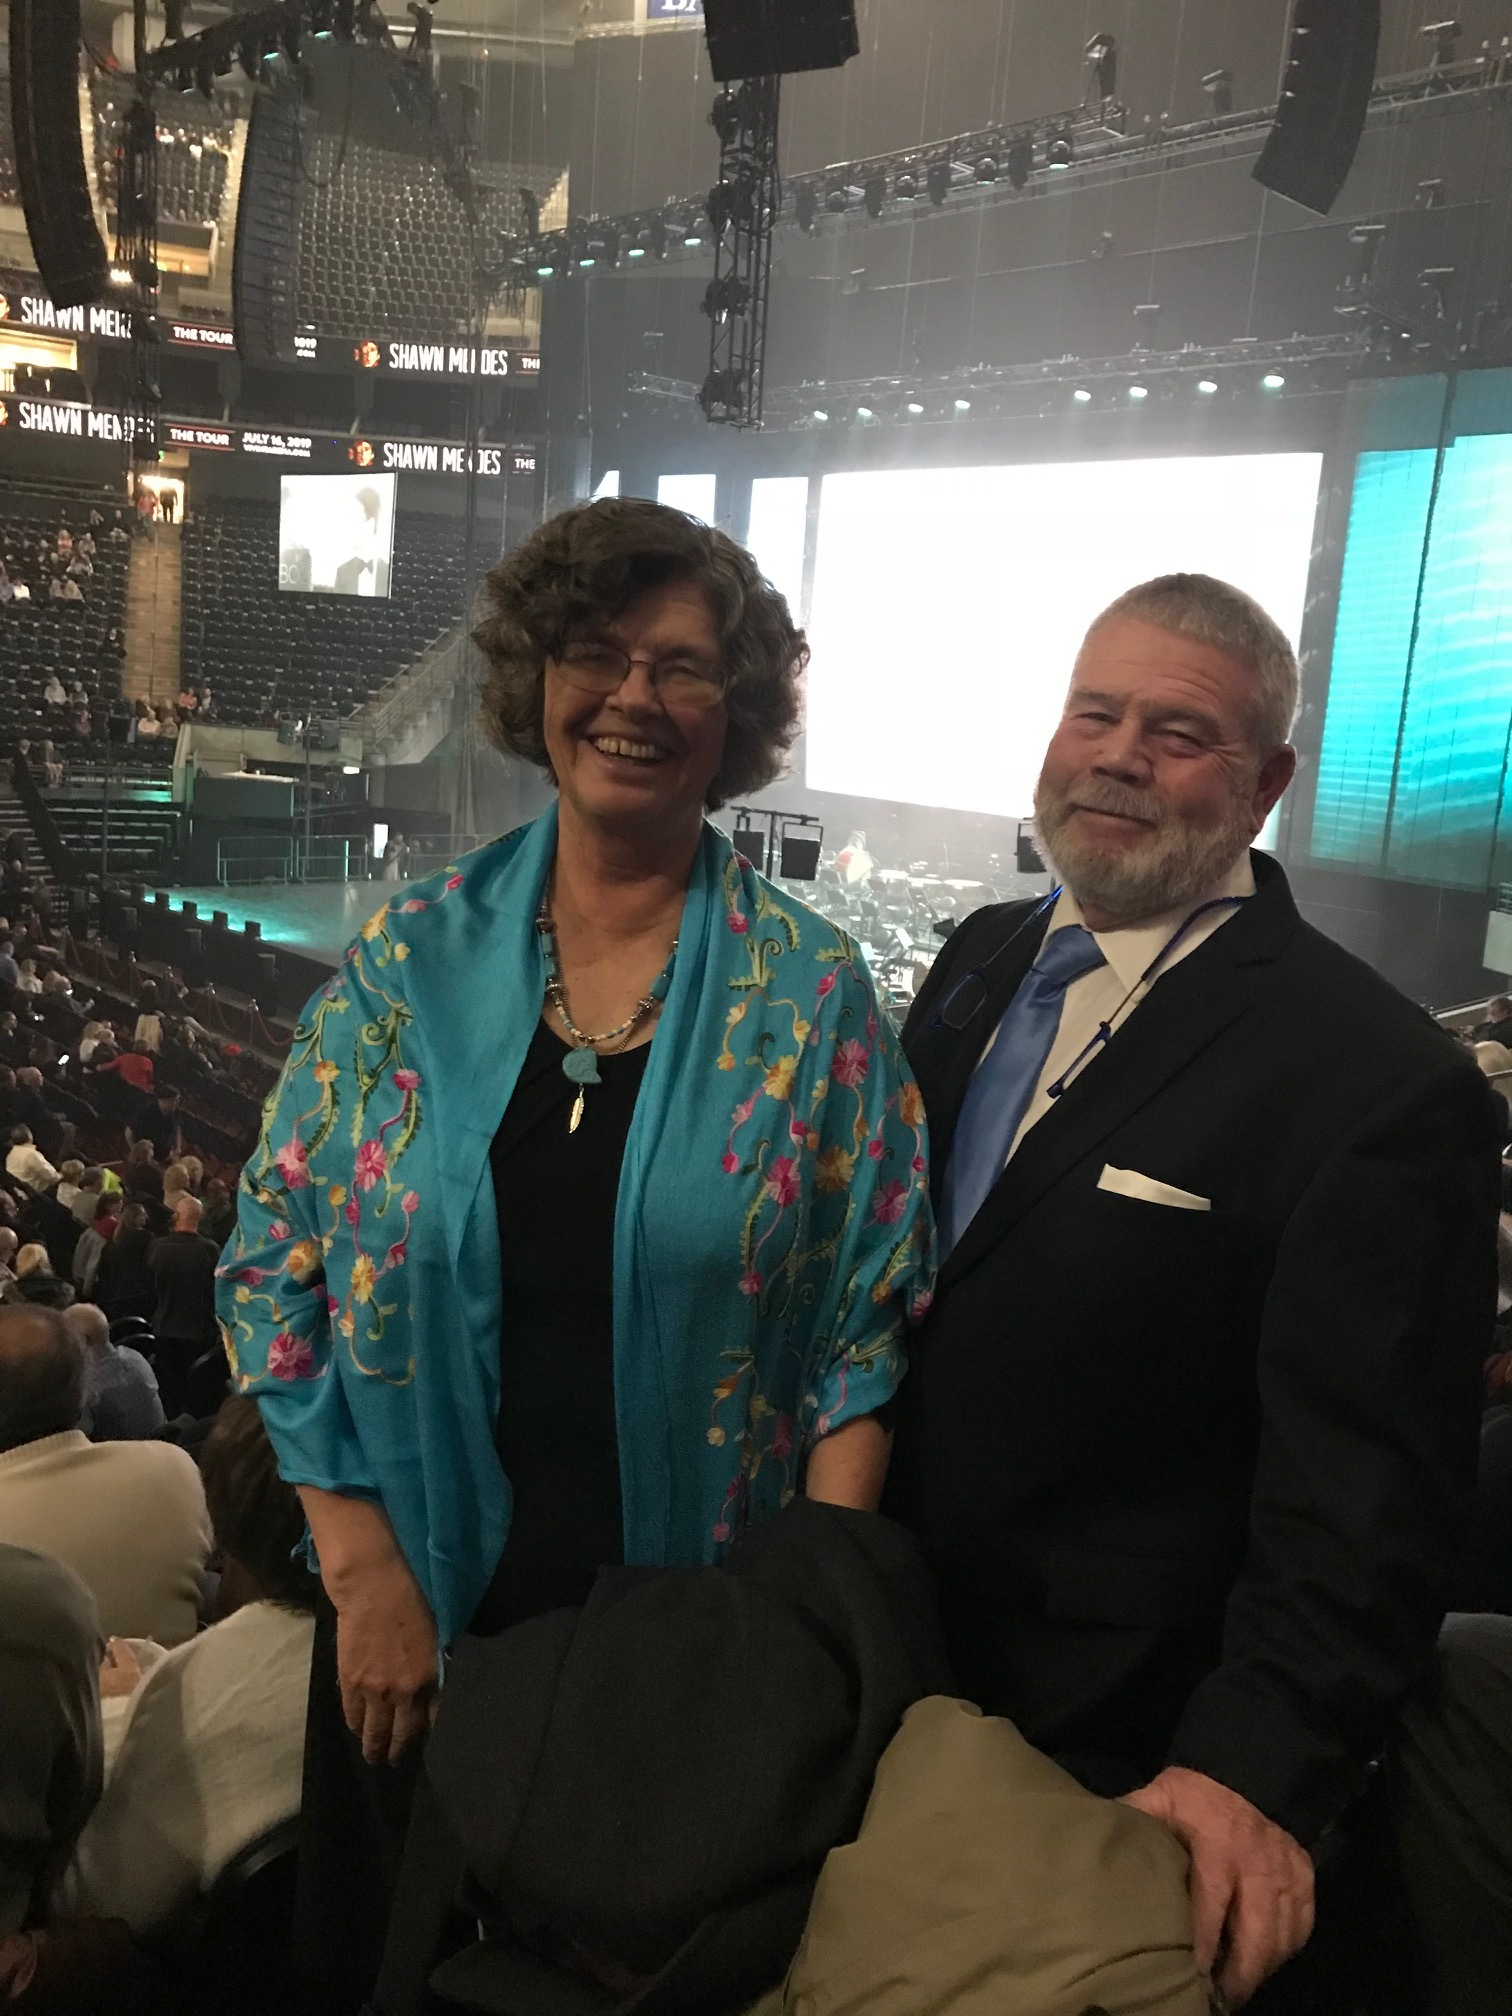 Patty and Zack at Andrea Bocelli concert in Salt Lake City